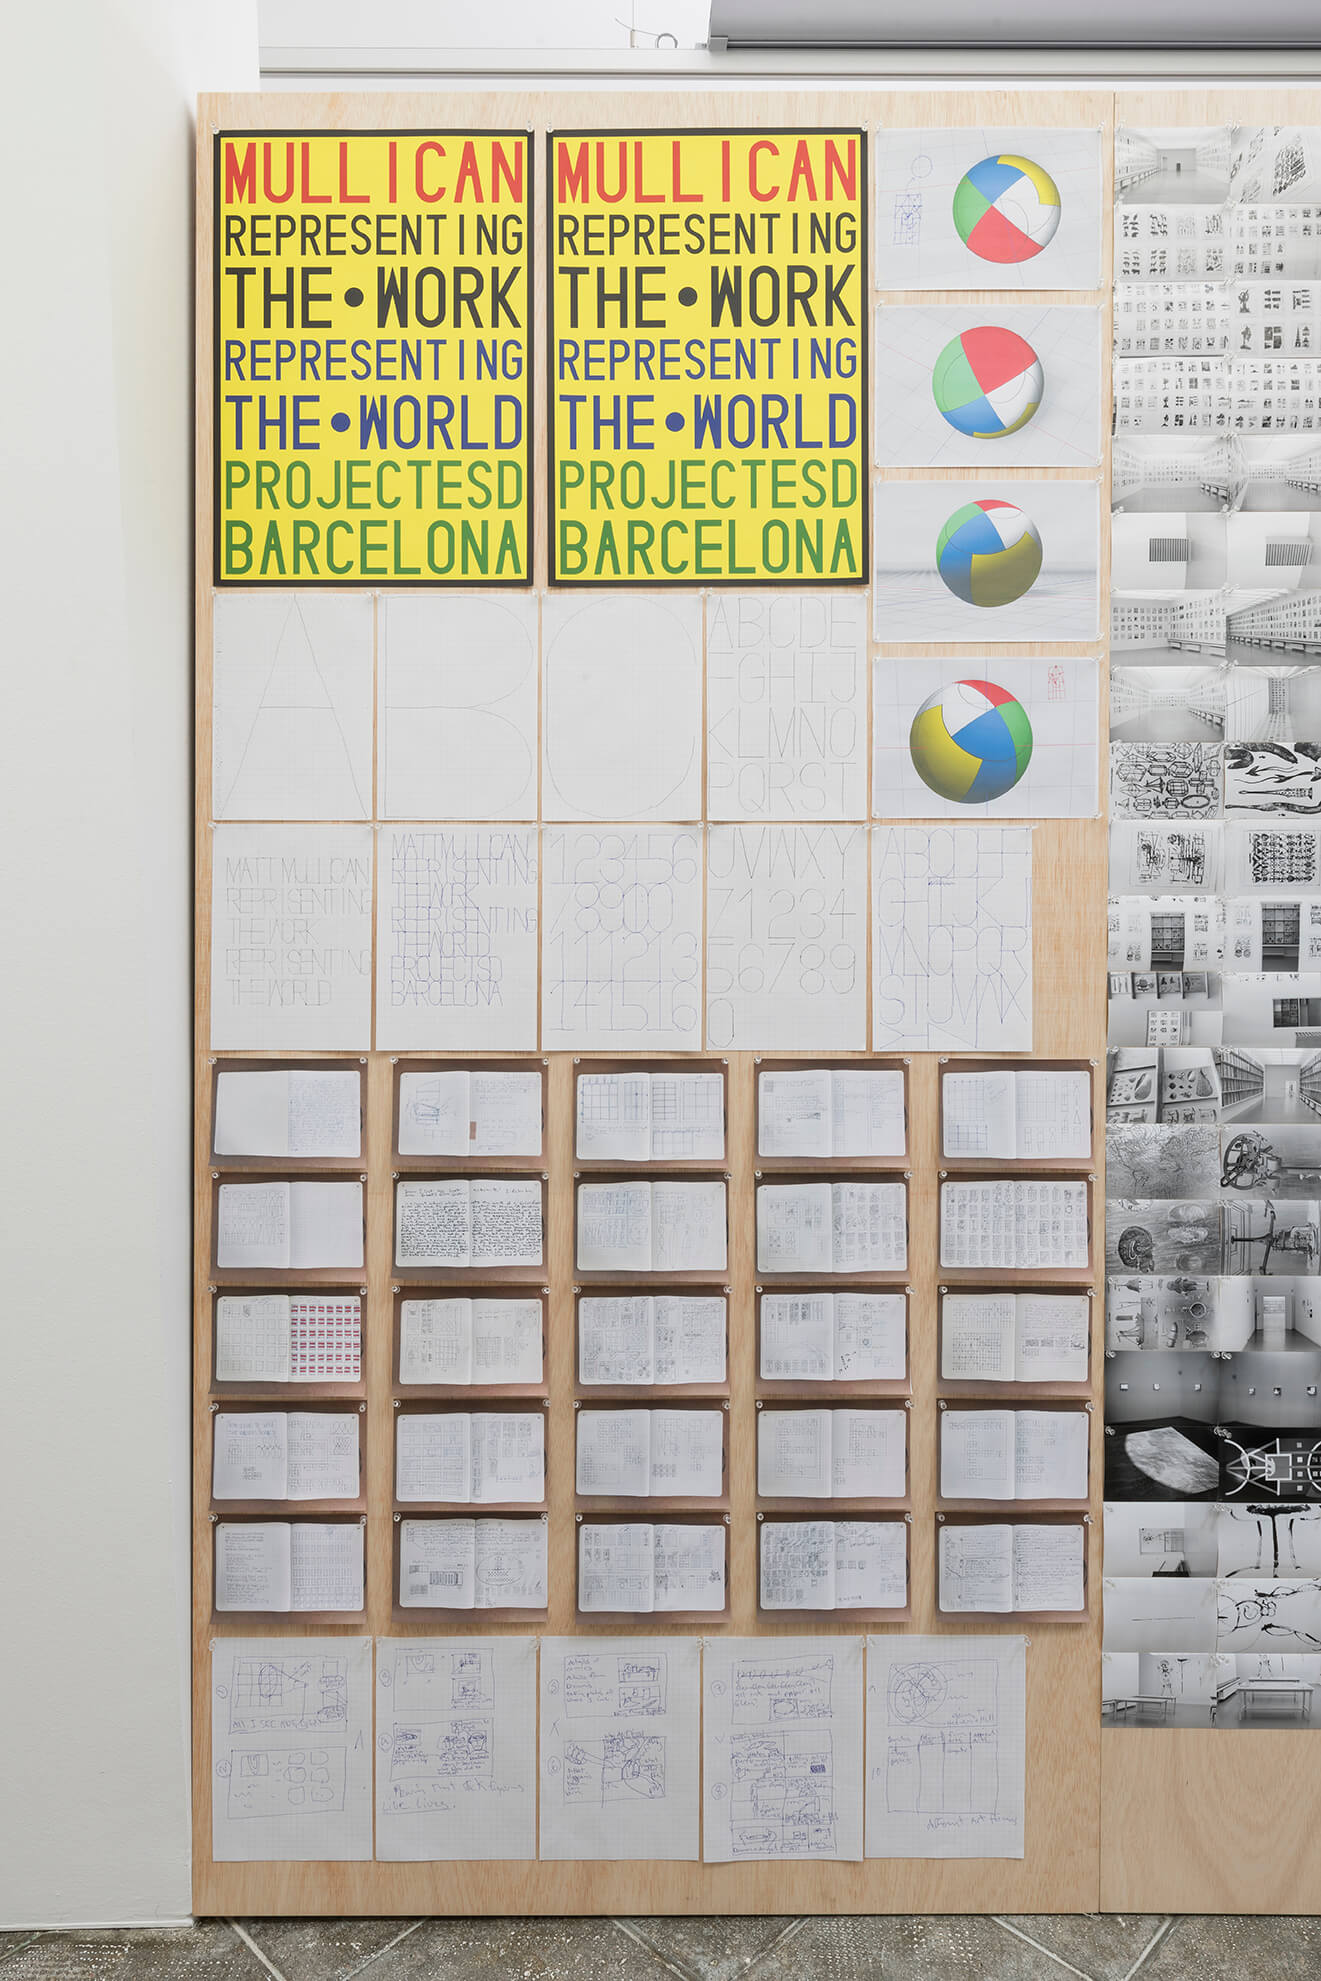 Untitled (Board for Representing the work), 2018 | Representing The Work | ProjecteSD